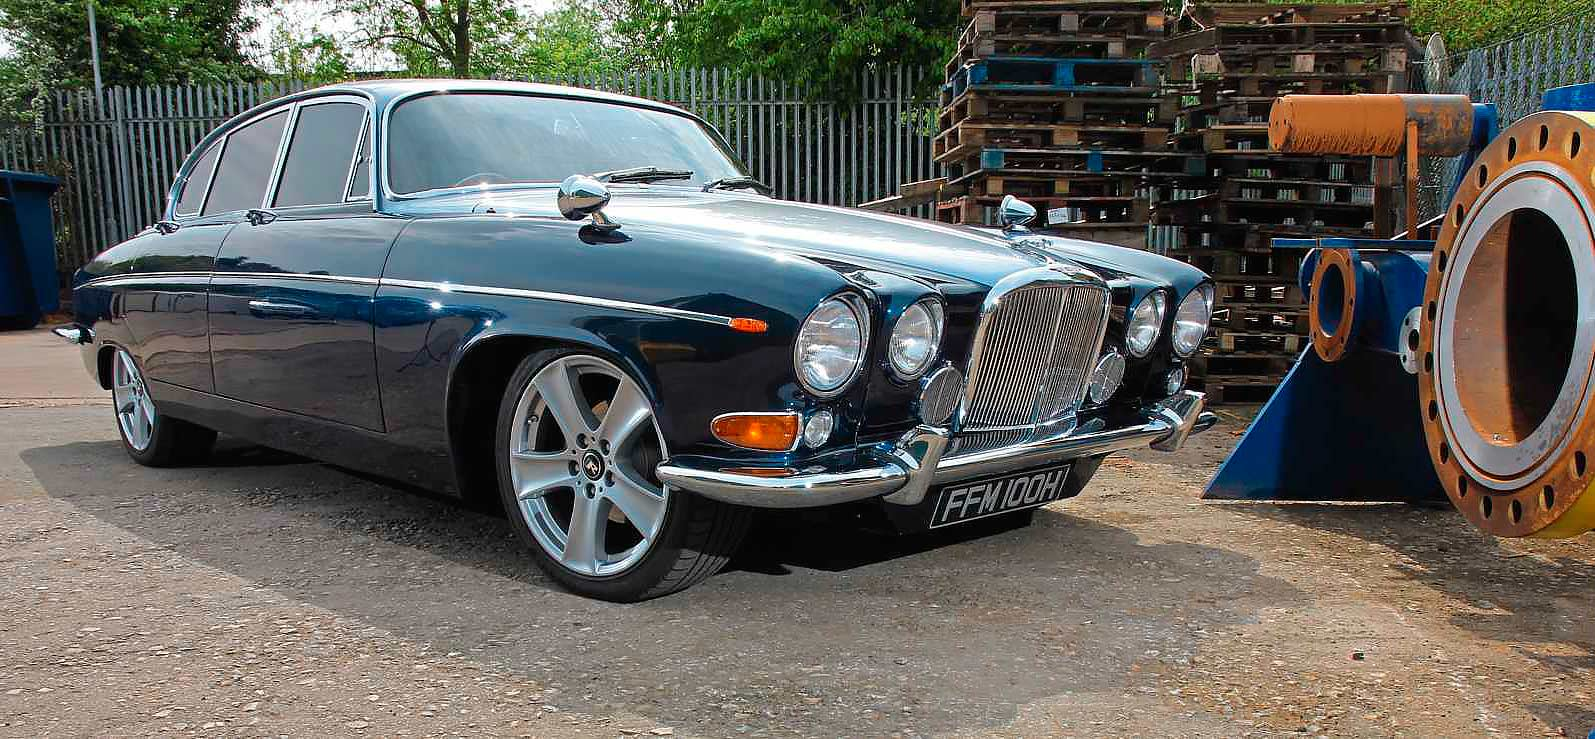 Modified Supercharged 1970 Jaguar 420g Automatic Drive My Blogs Xj6 Manual Transmission